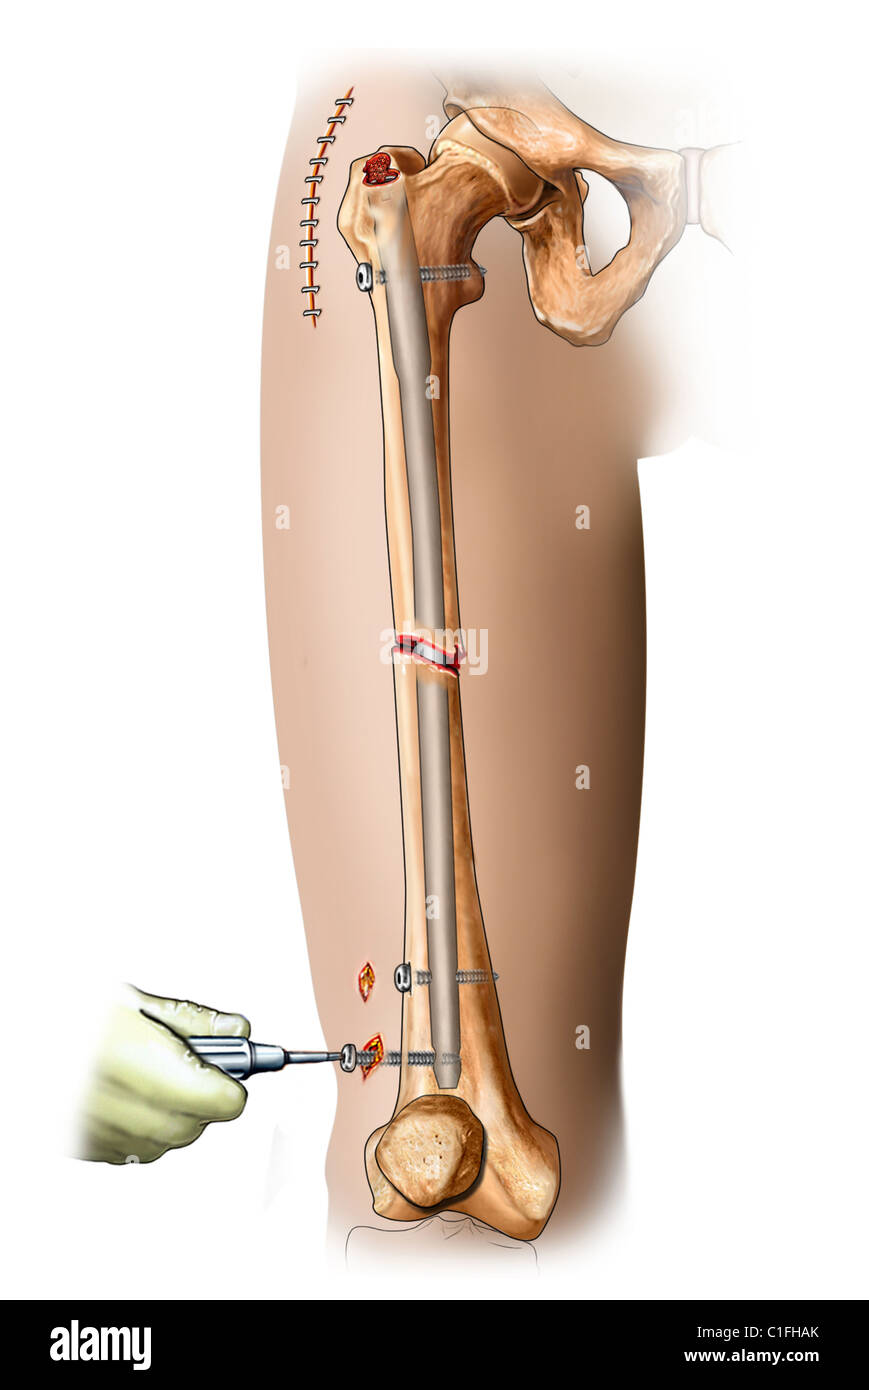 Internal fixation of femur fracture with intramedullay rod in place within the femoral canal - Stock Image